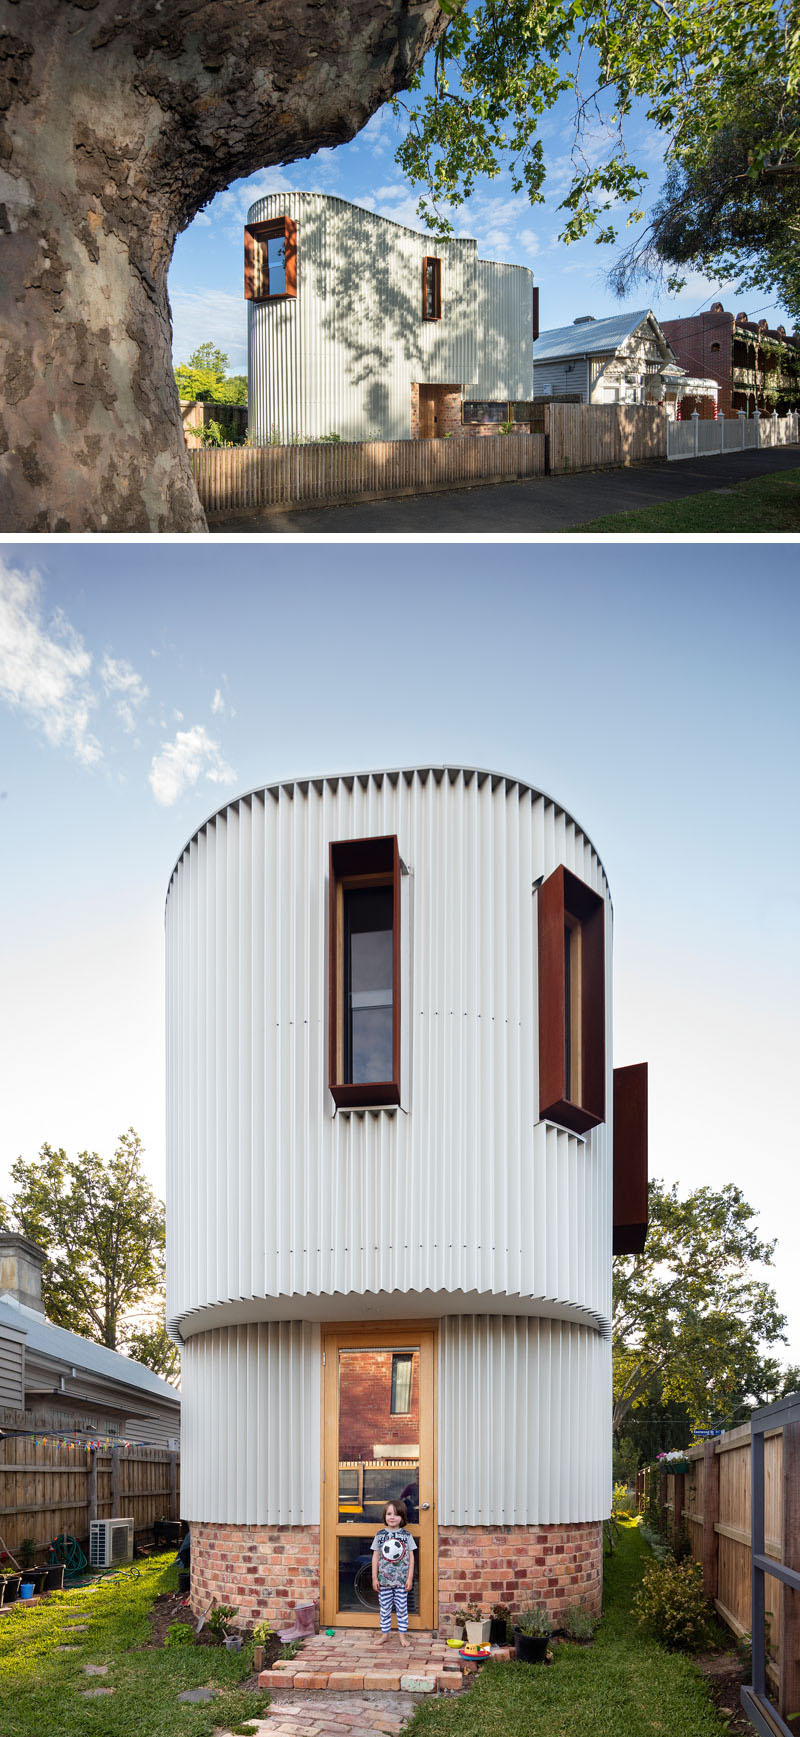 This australian house has a curved exterior of zig zag metal ·